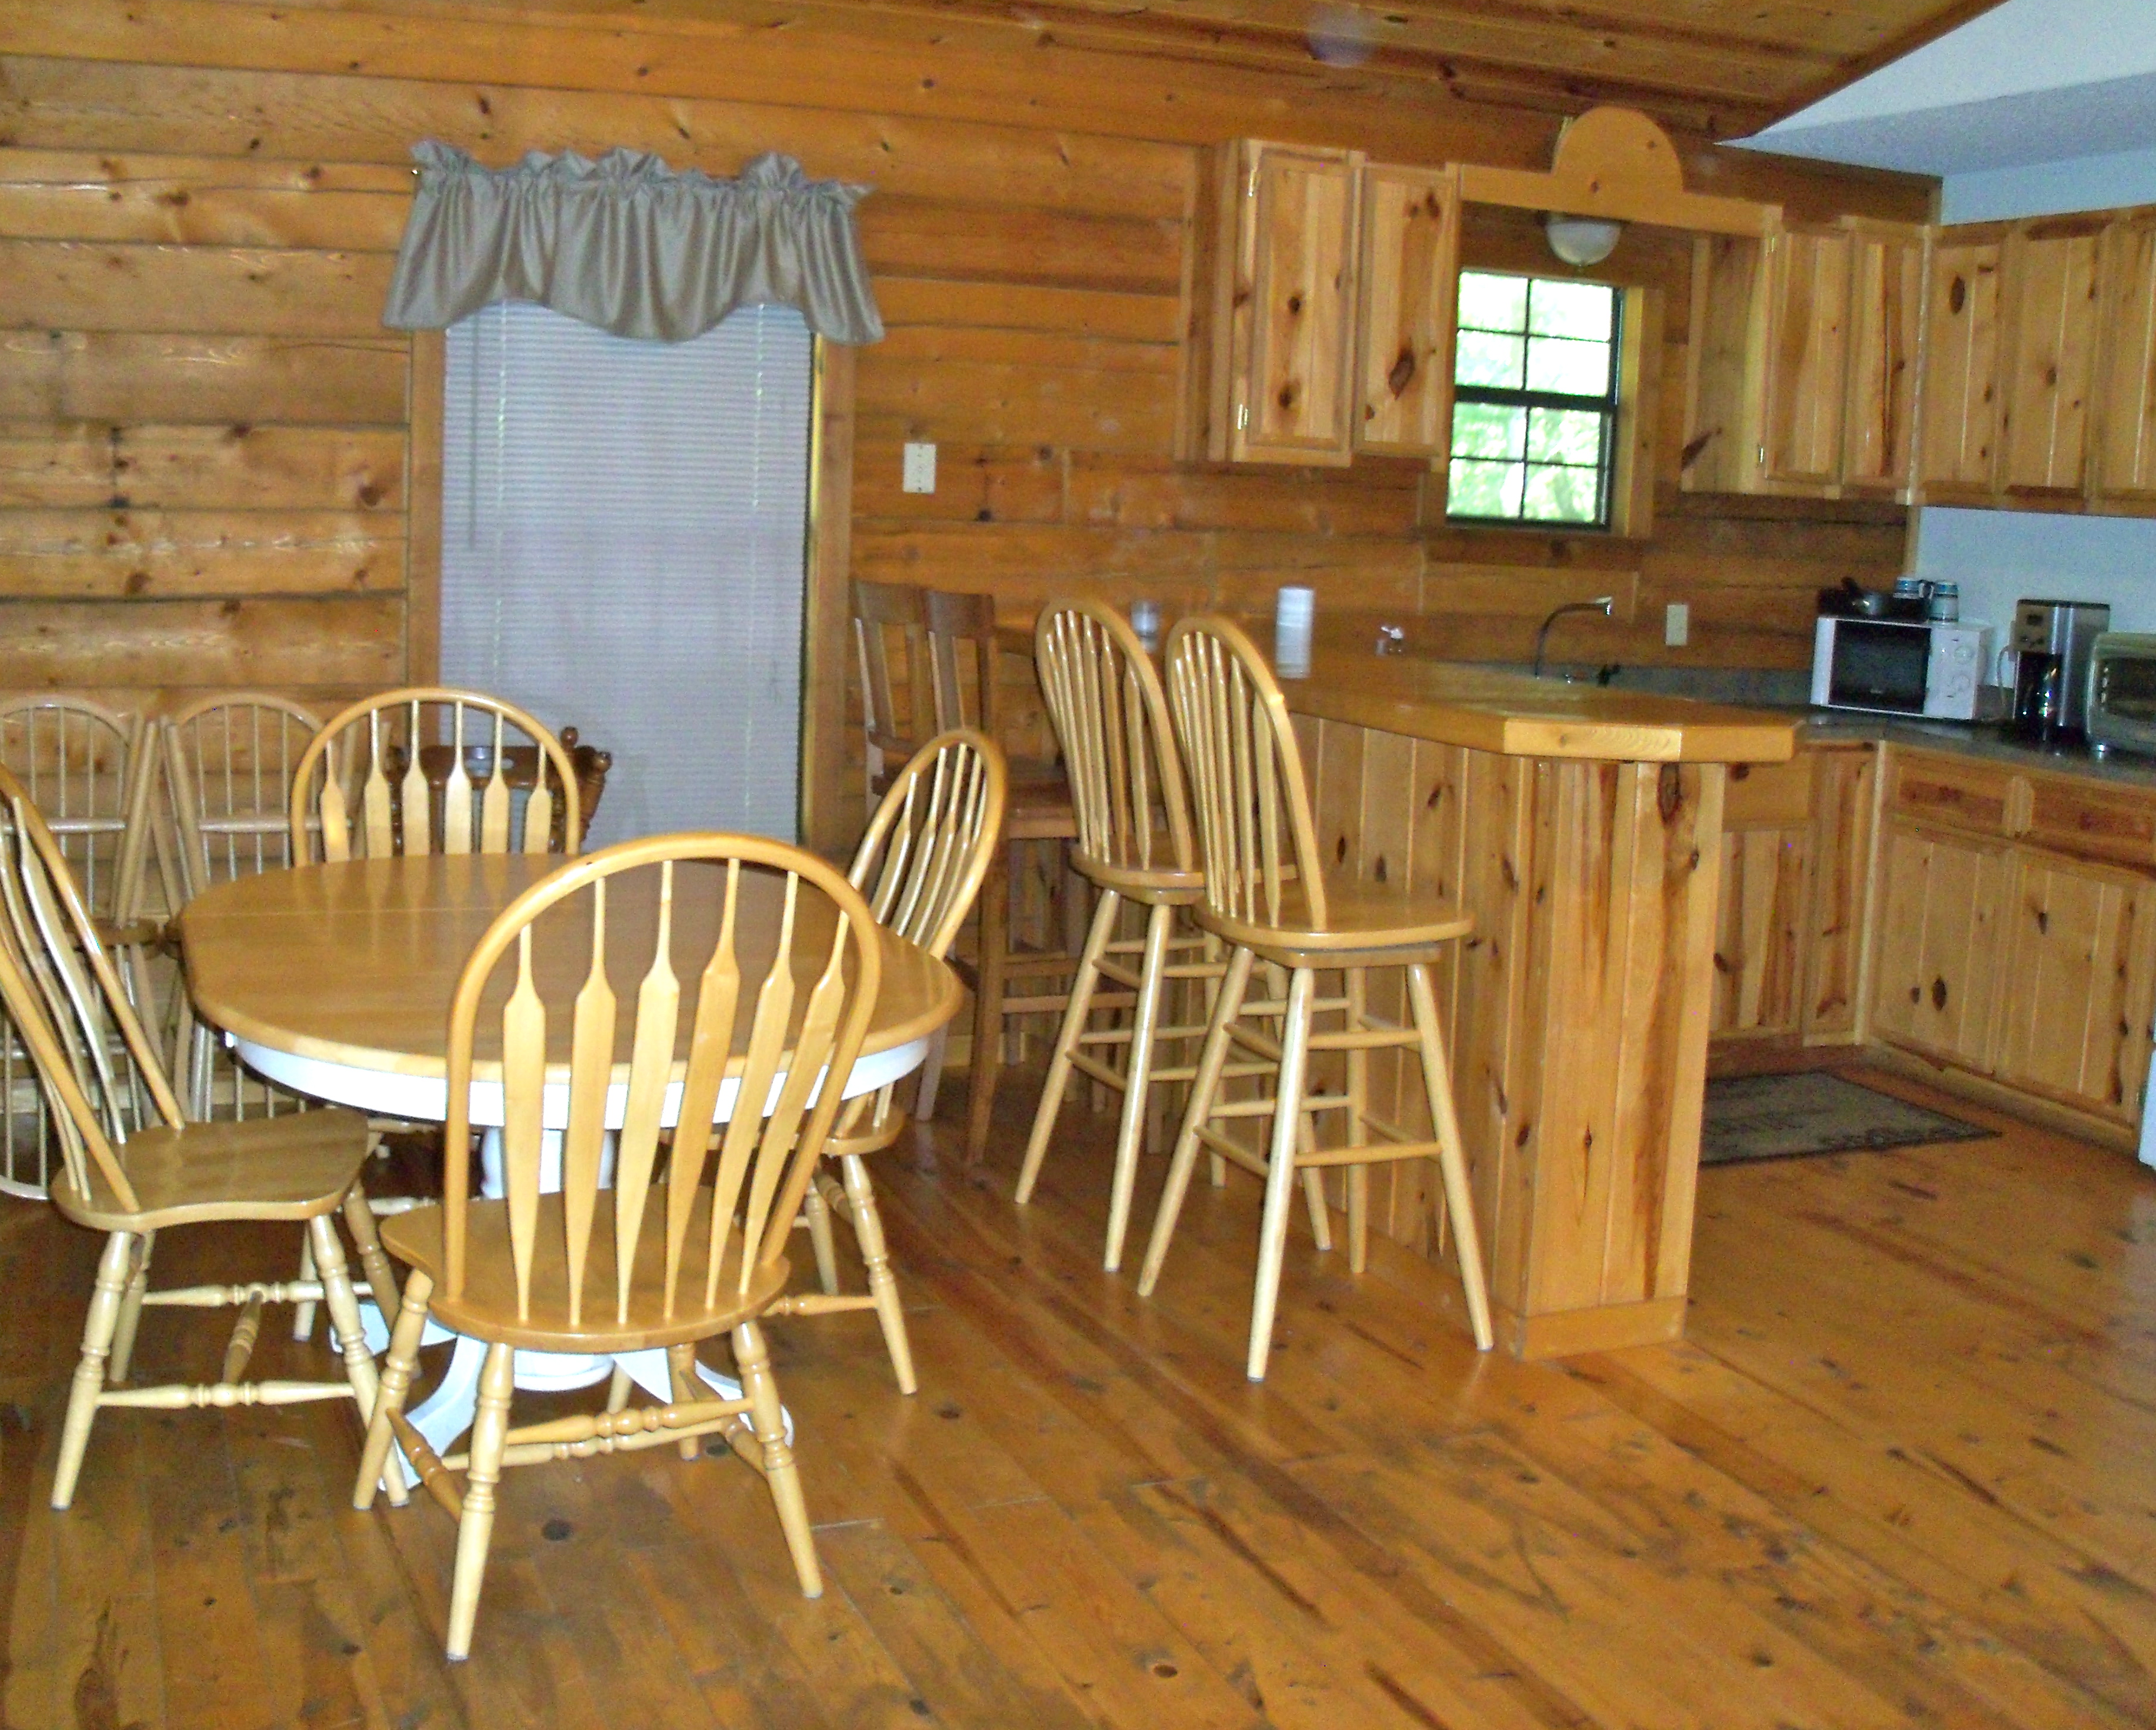 park bow beautiful investment properties state sale story near cabin lodge rentals united hochatown a ok custom broken luxury bears for built twin bend is cabins beavers